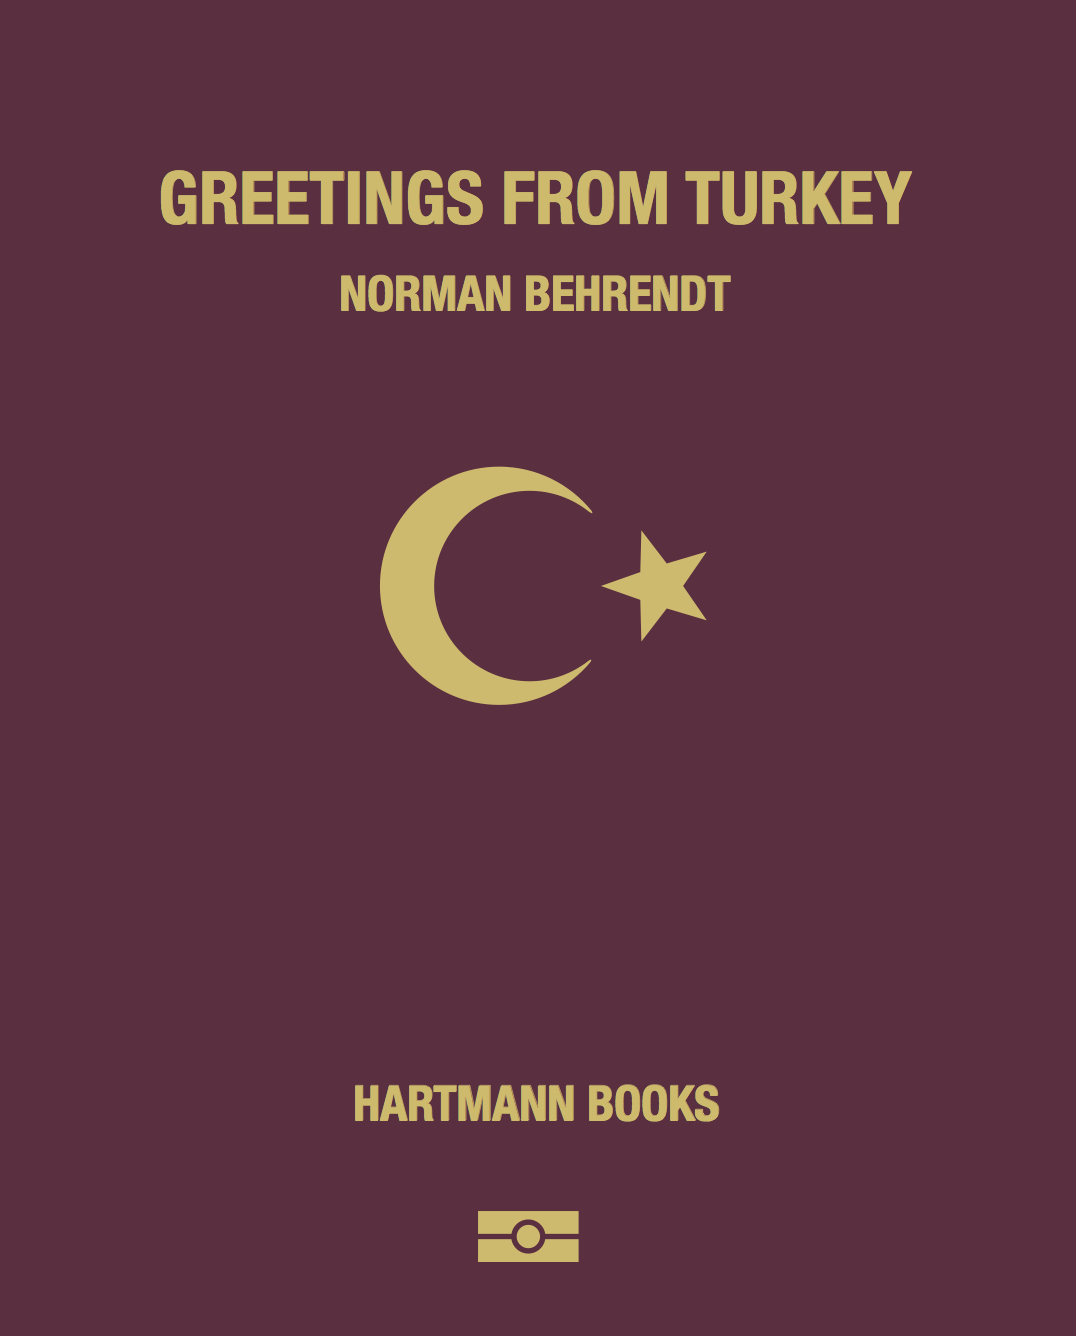 Book of the month norman behrendt greetings from turkey lfi blog m4hsunfo